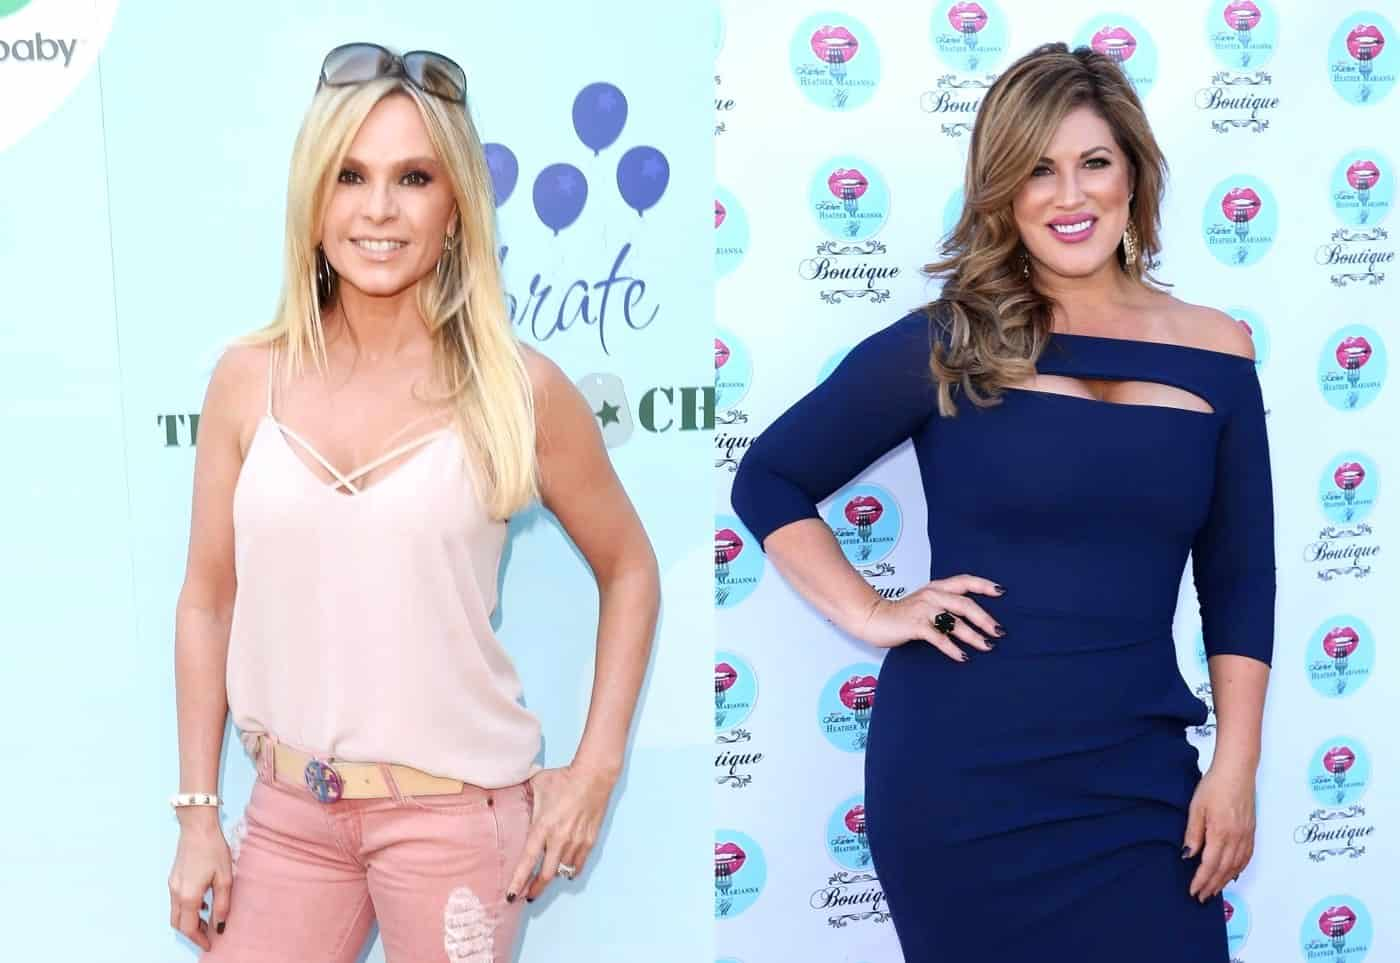 RHOC's Tamra Judge Shades Emily Simpson Over Hip Surgery, Emily Claps Back at Her Bikini Pics and Fires Back at Vicki's Claims That She 'Drank Kelly's Koolaid'